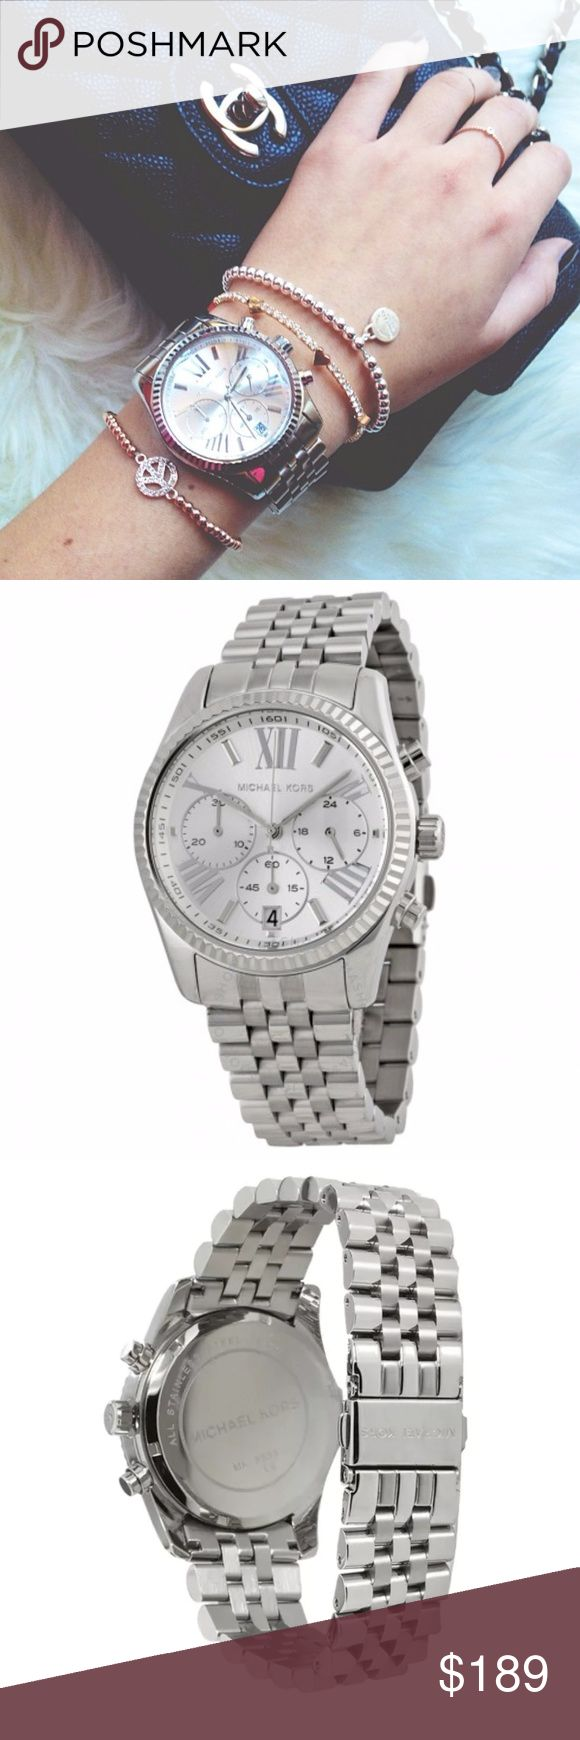 Michael Kors Lexington Silver Quartz Movement Case diameter: 38mm Mineral Crystal Stainless Steel case with Stainless-Steel band Water-resistant to 100 Meters / 330 Feet / 10 ATM Specifications  Country Of OriginChina GenderWomen's MetalStainless Steel ColorSilver Watch Band MaterialStainless Steel KORS Michael Kors Accessories Watches